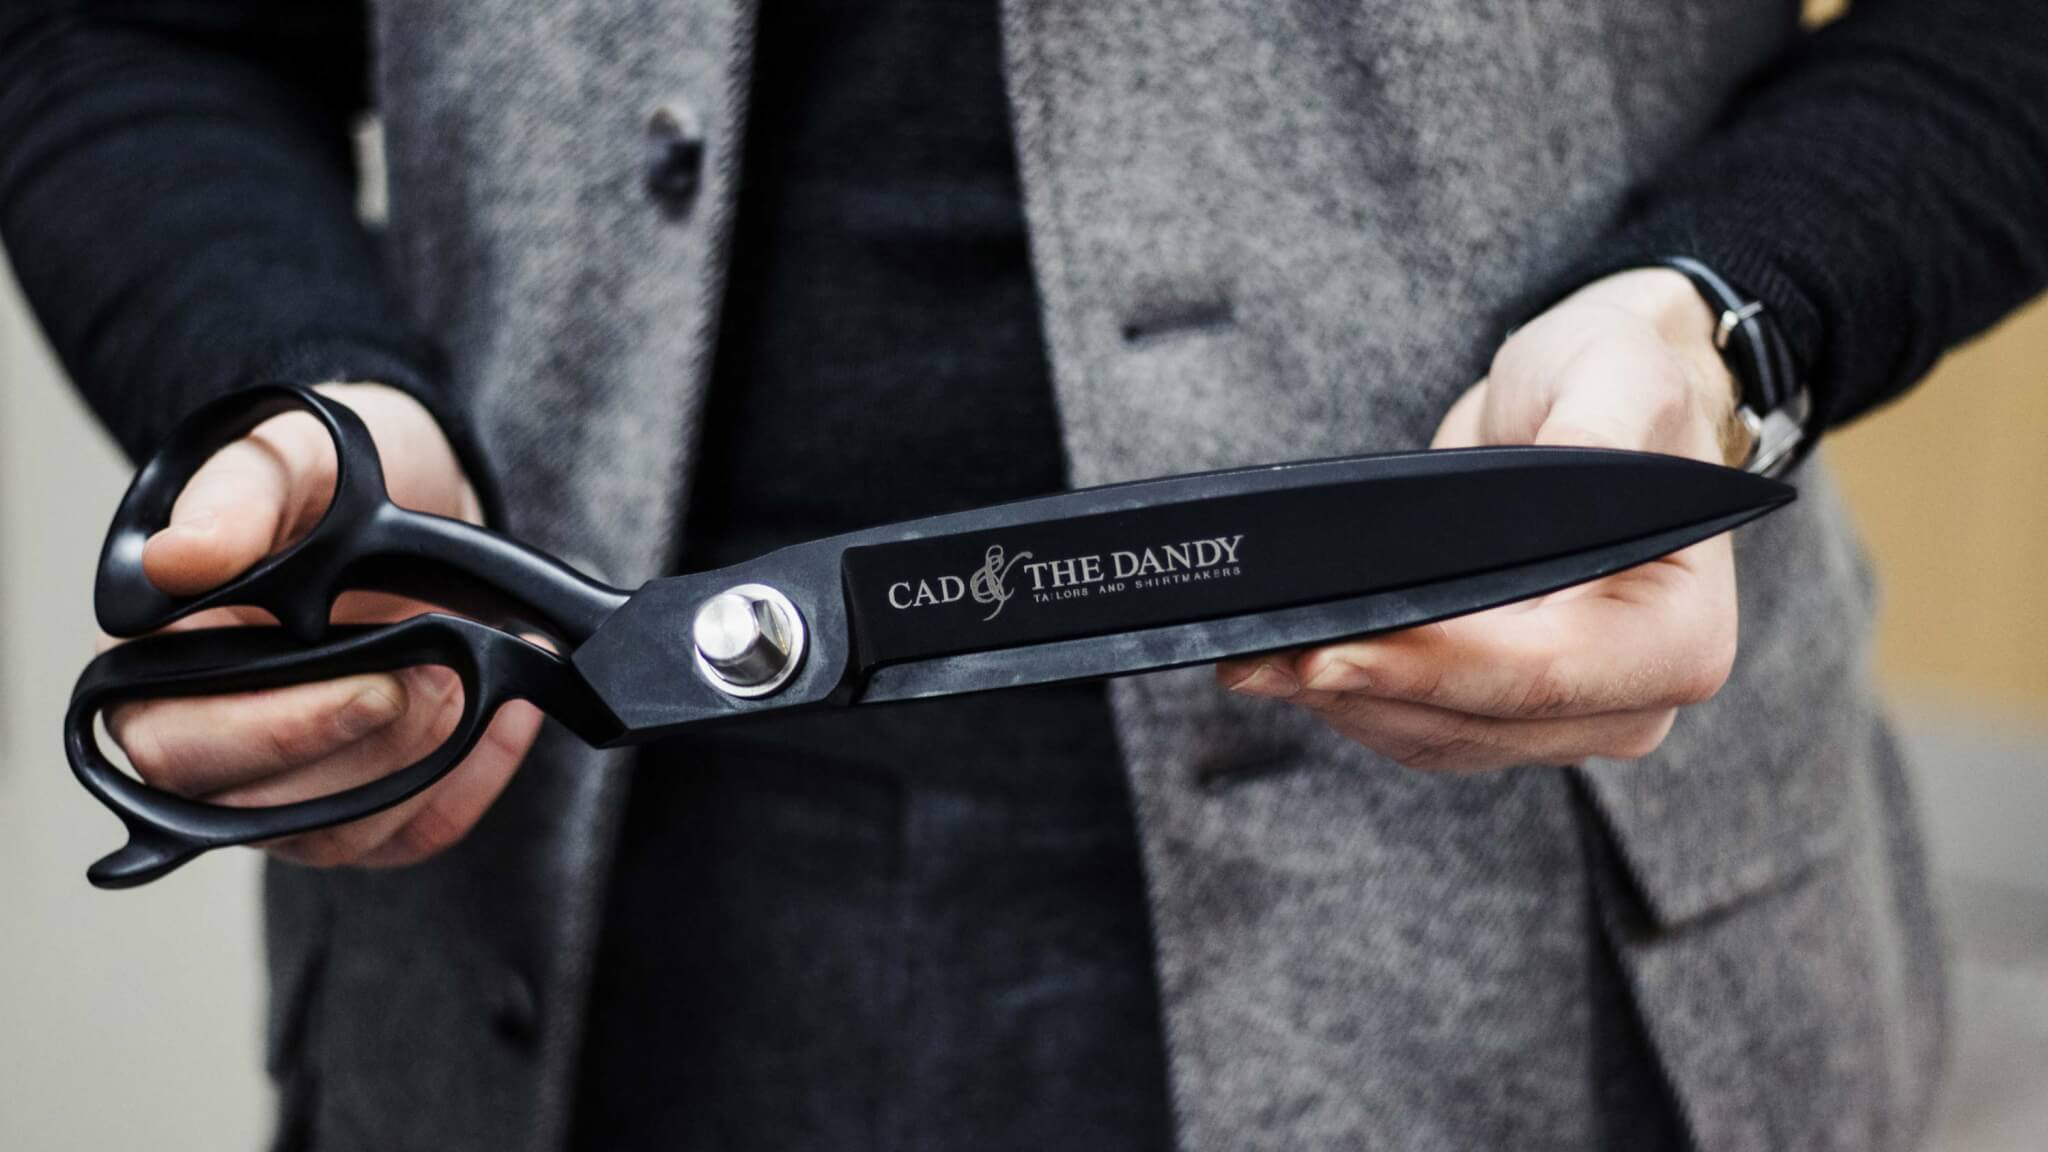 cad-and-the-dandy-bespoke-tailoring-shears